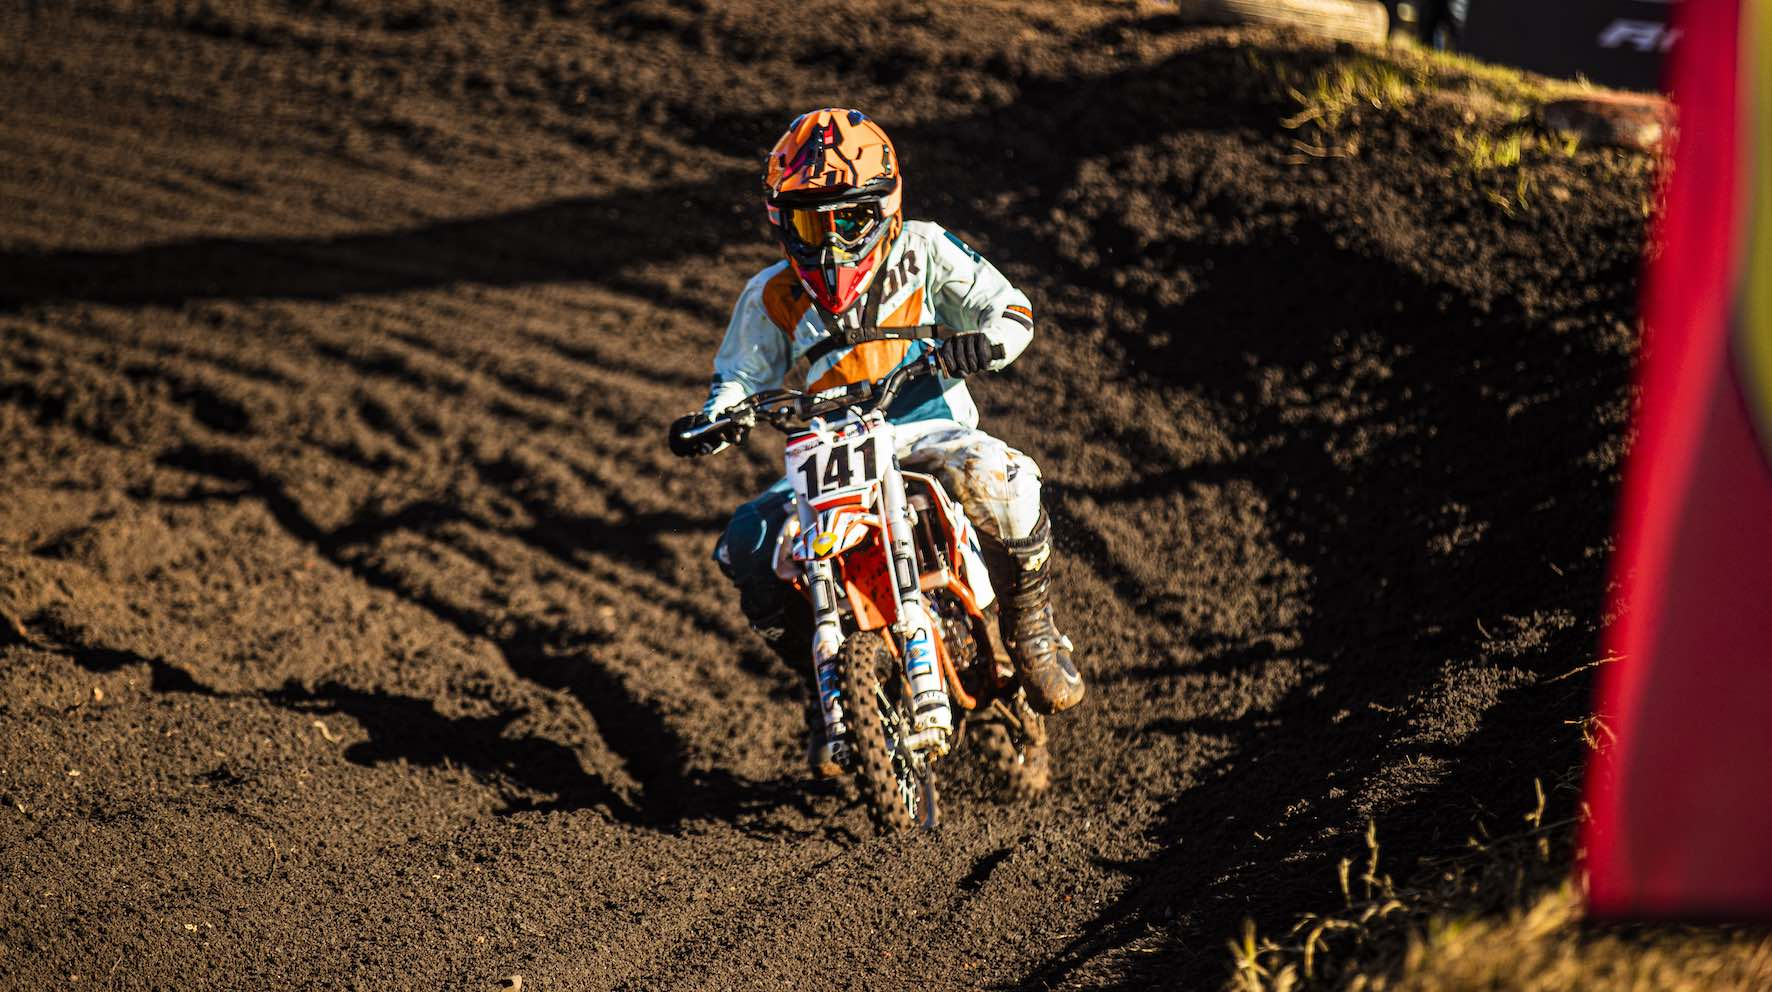 Christian Berrington-Smith racing Round 4 of the 2019 SA Motocross Nationals at Dirt Bronco